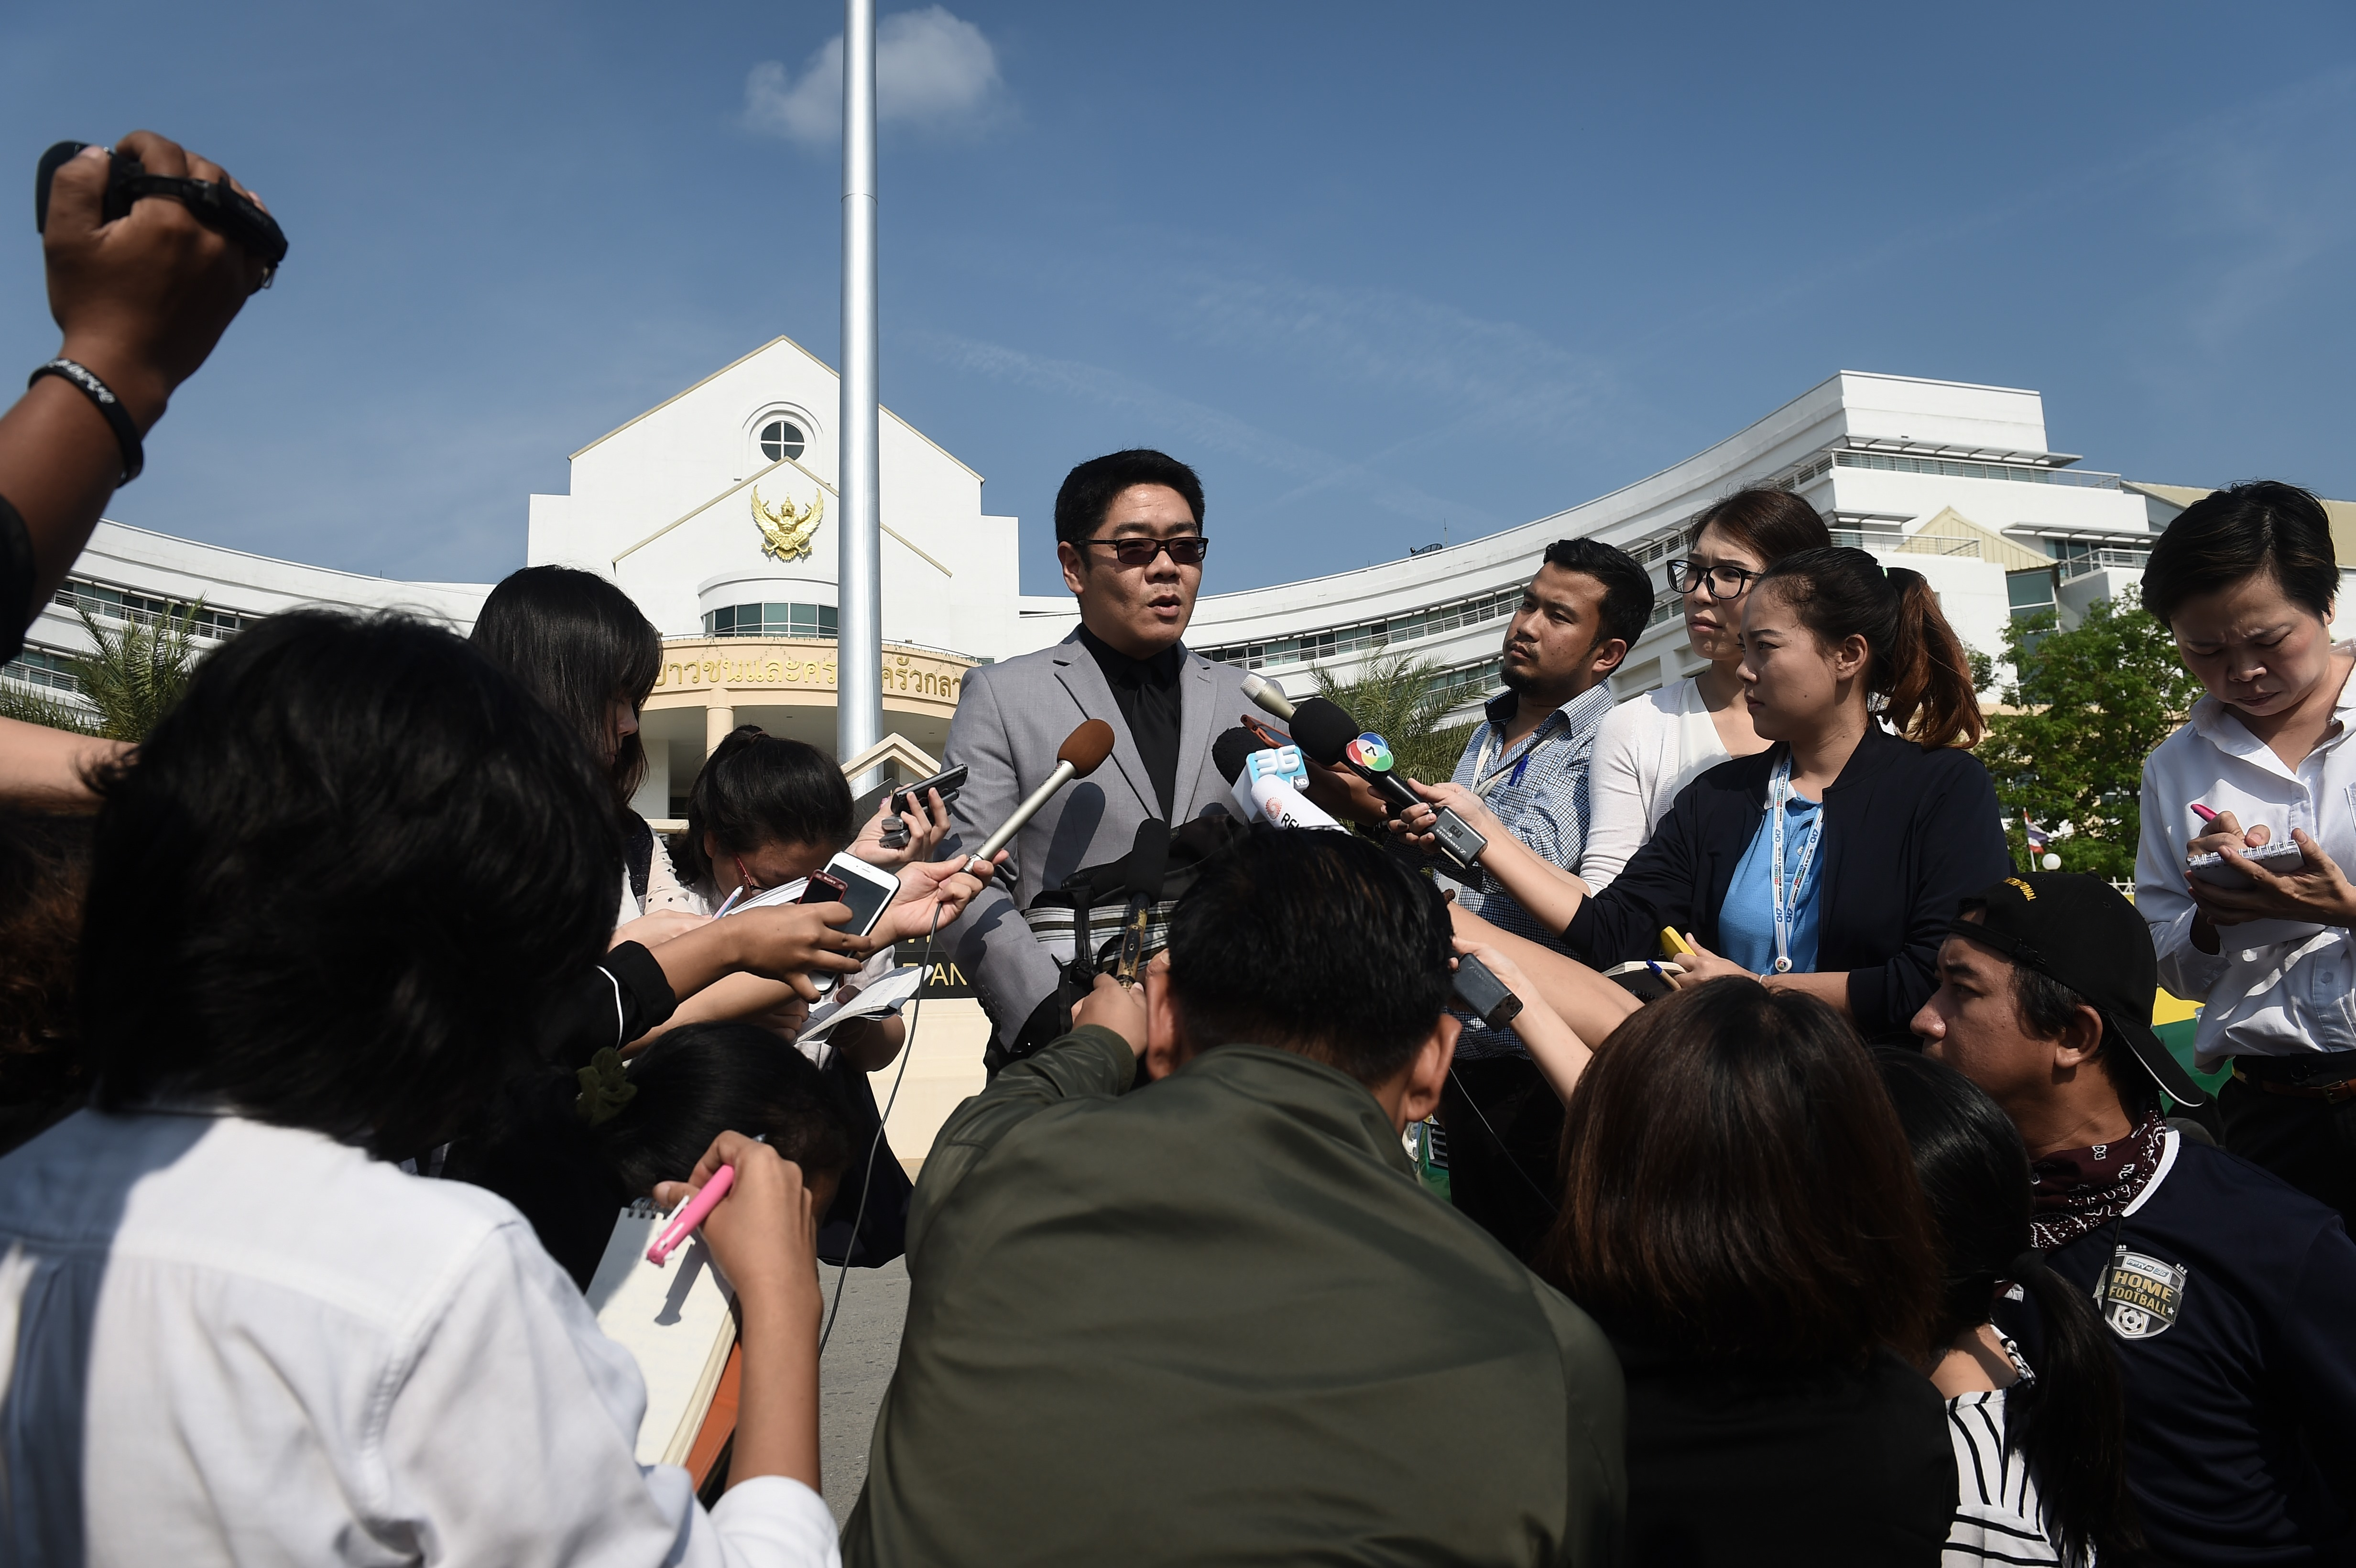 Kong Suriyamontol (C-with sunglasses), the Thai lawyer for Japanese national Mitsutoki Shigeta, speaks to the press after his client was granted paternity rights to his children, at a juvenile court in Bangkok on February 20, 2018.                     A Bangkok court on February 20 granted Shigeta  sole parent  rights to 13 babies fathered through Thai surrogate mothers, a ruling that paves the way for him to take custody of the children.